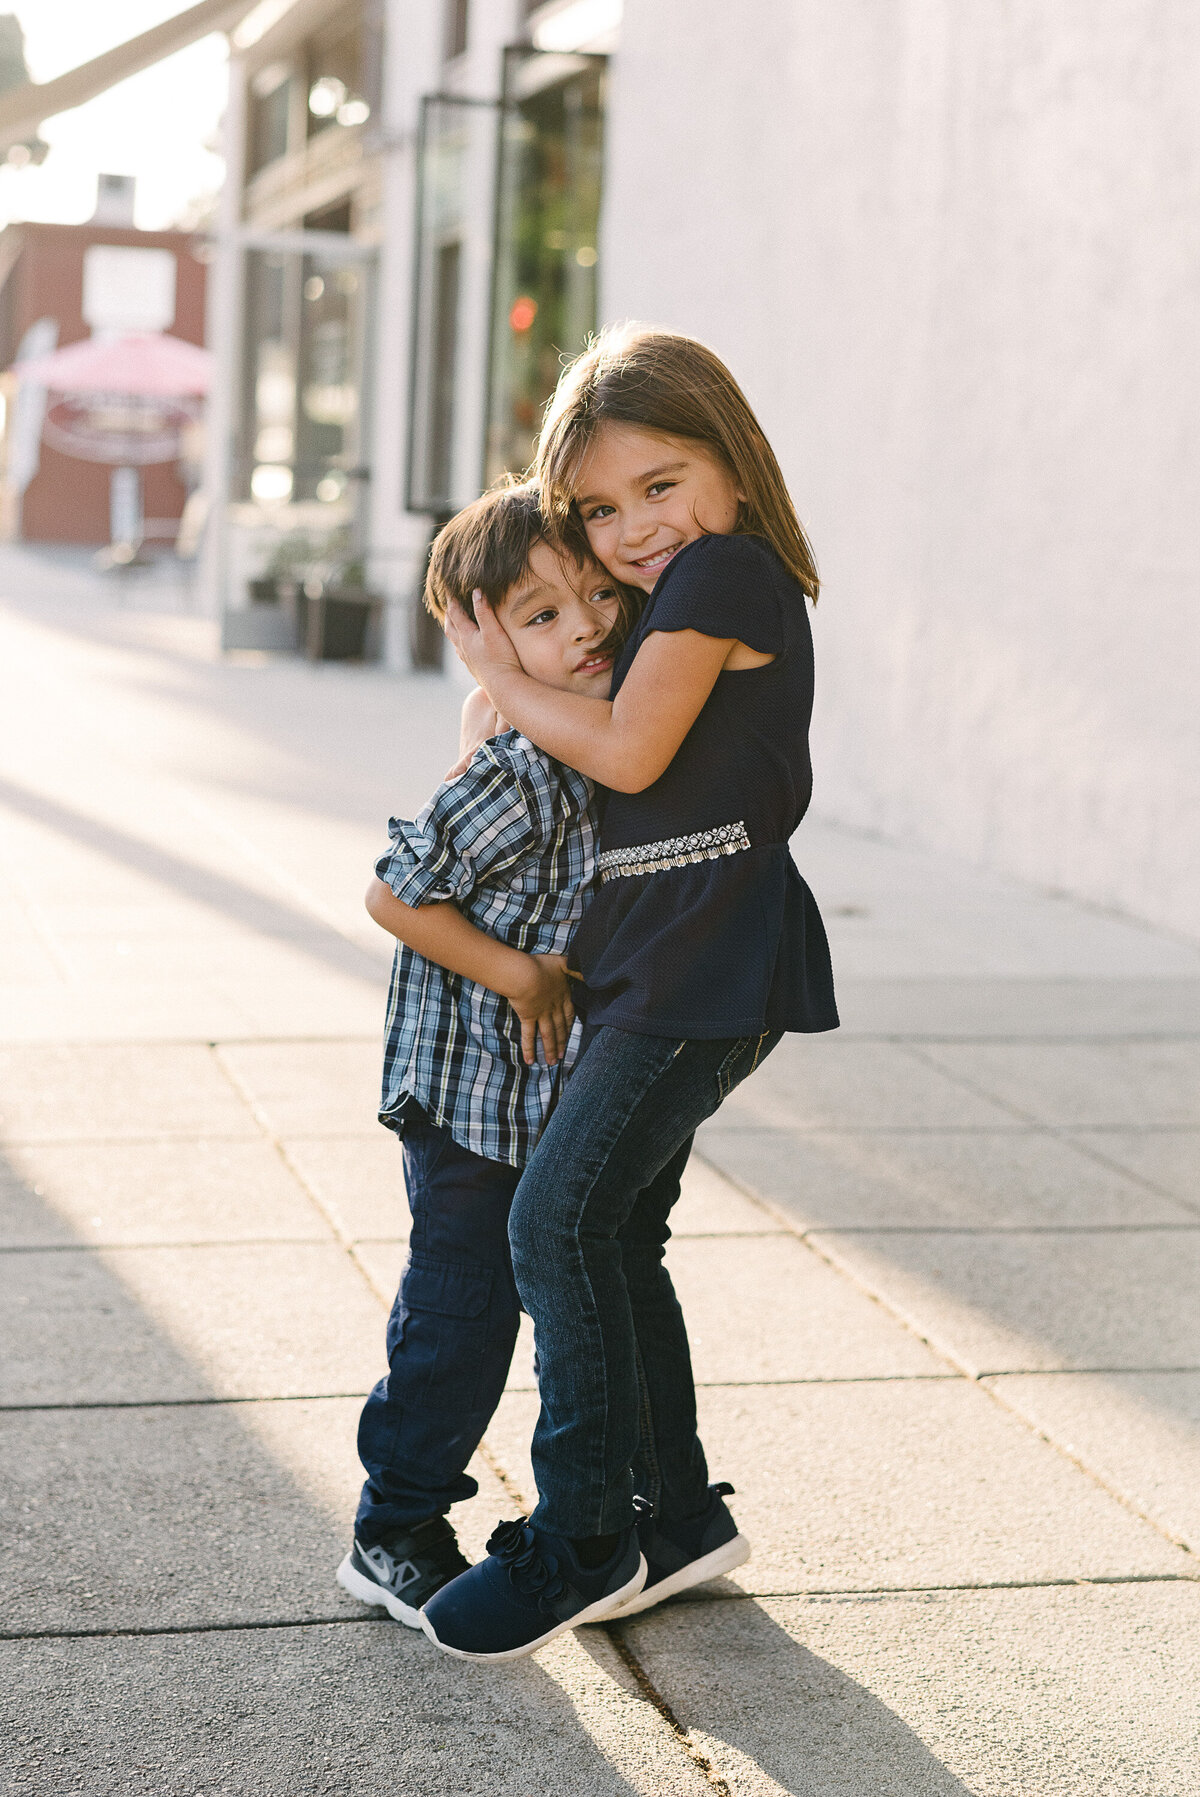 Encinitas Family Photographer-big sister32